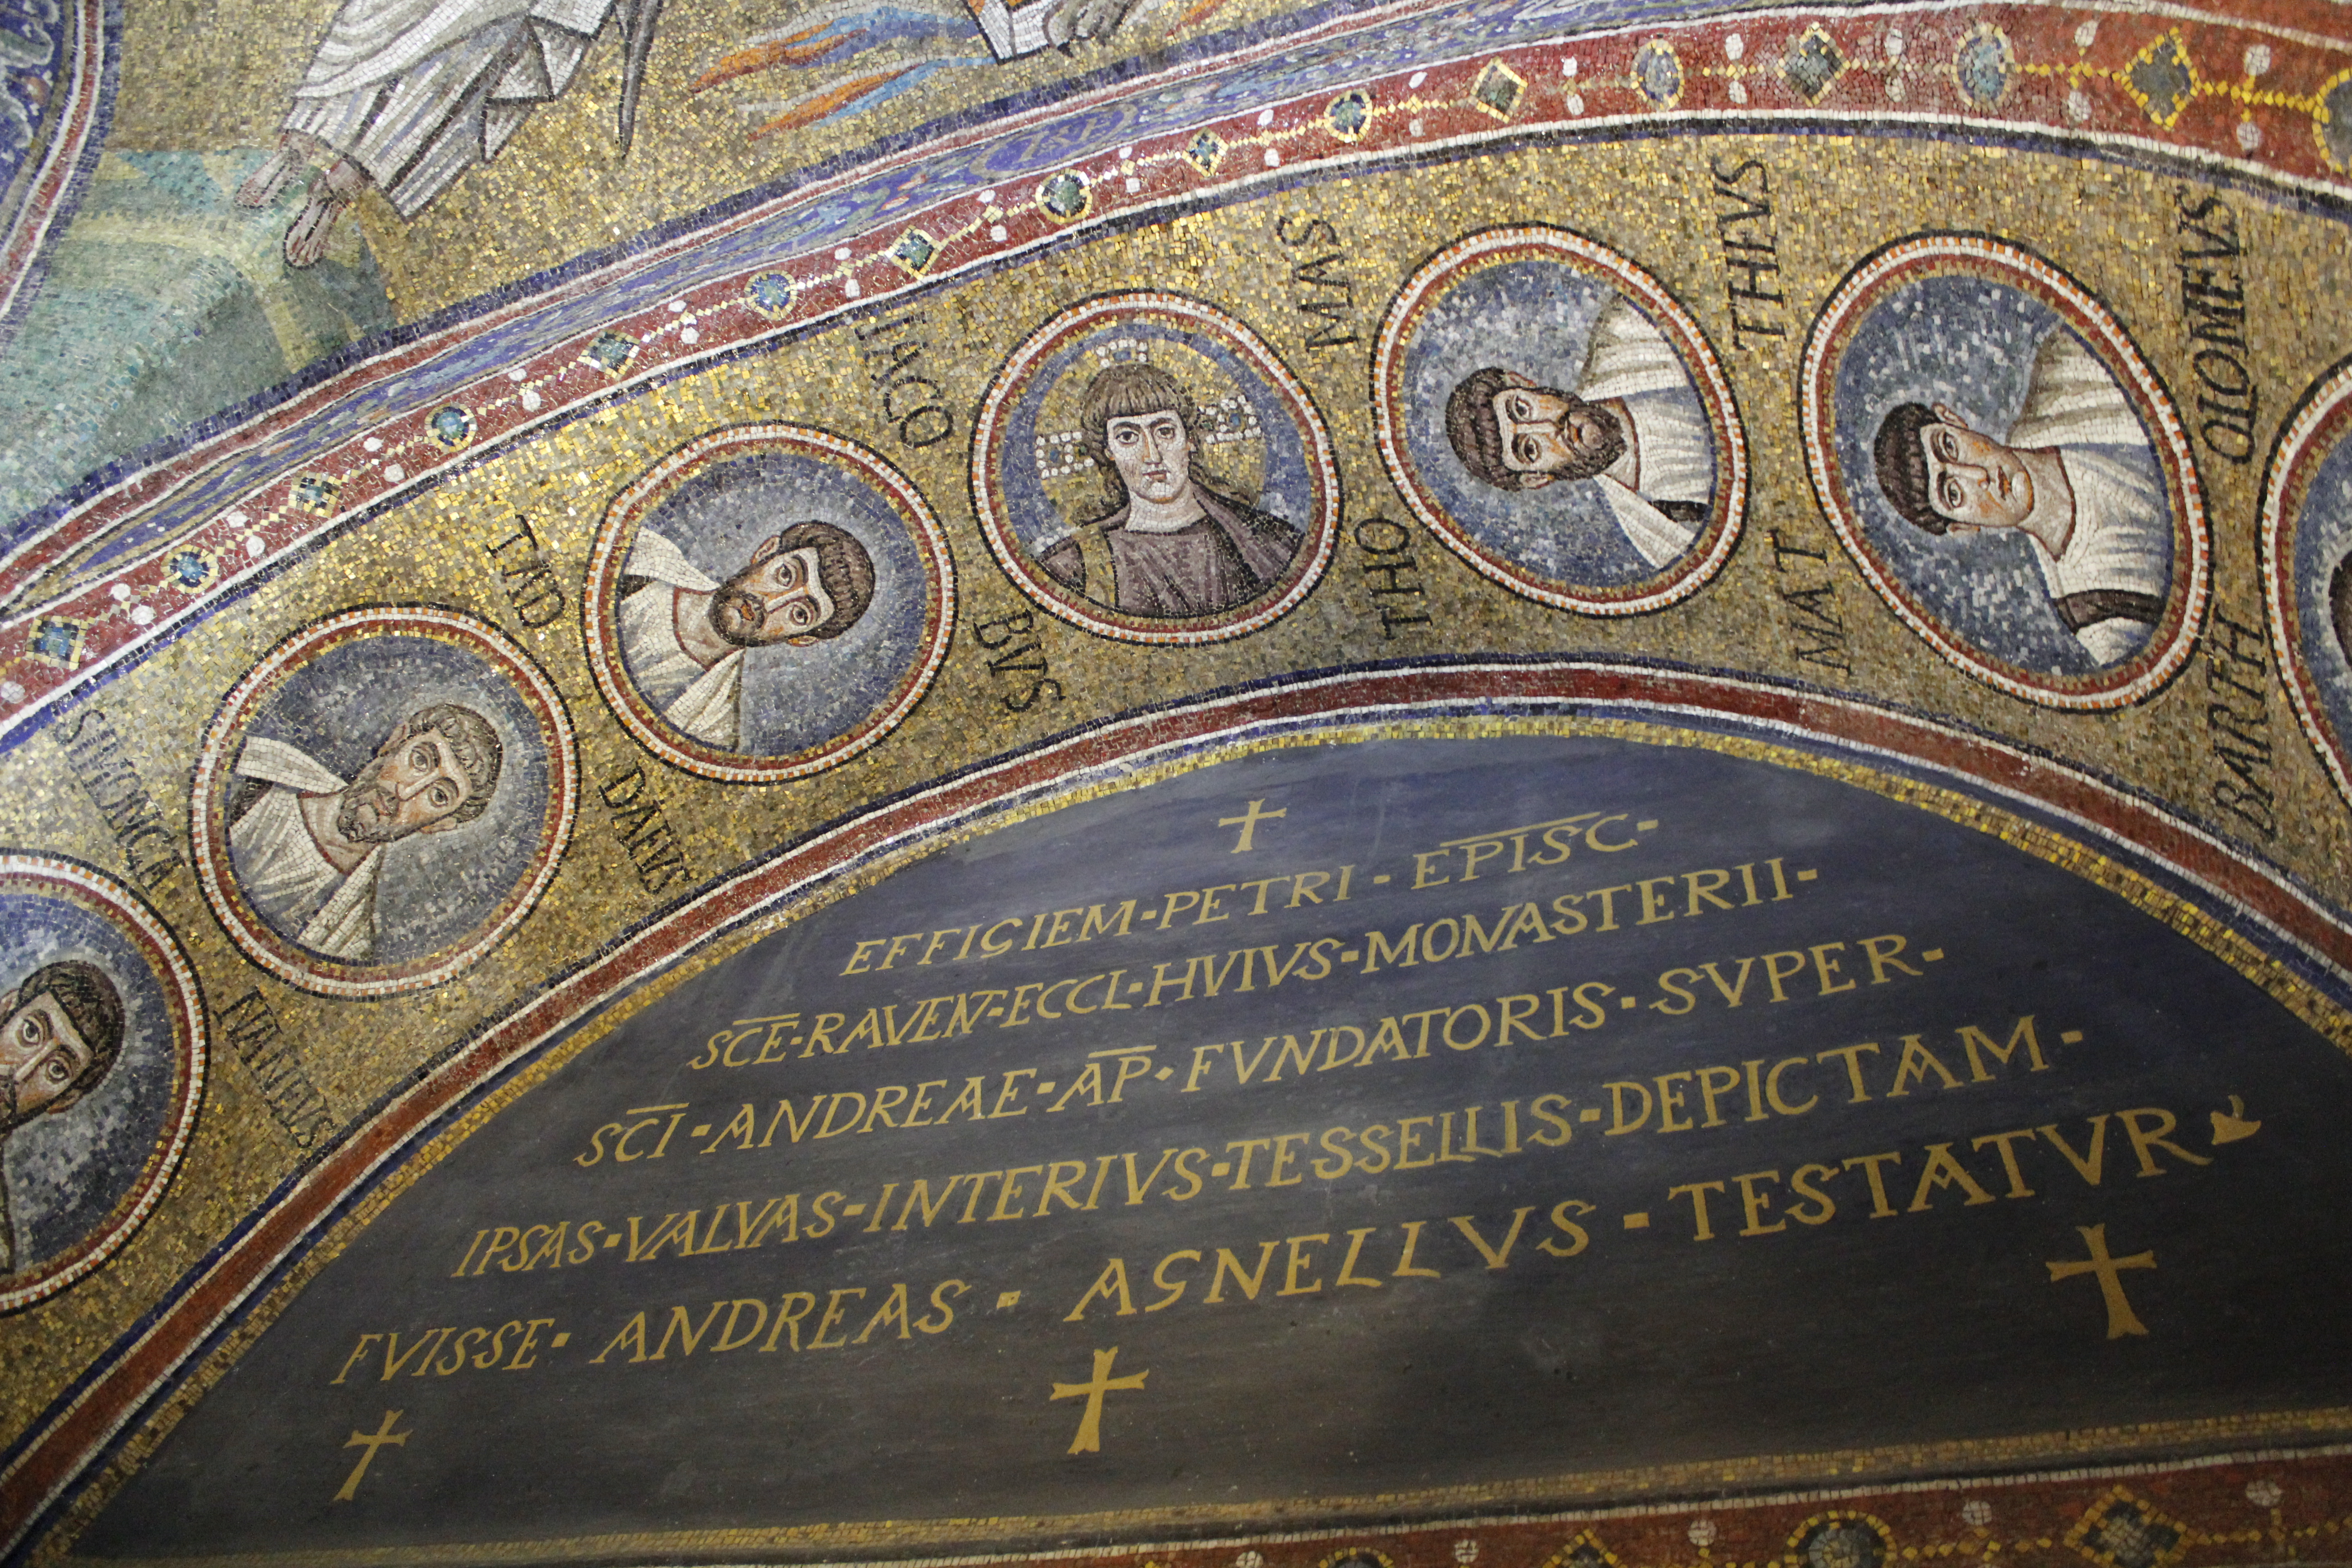 https://upload.wikimedia.org/wikipedia/commons/f/f8/Cappella_arcivescovile_Ravenna_5.JPG